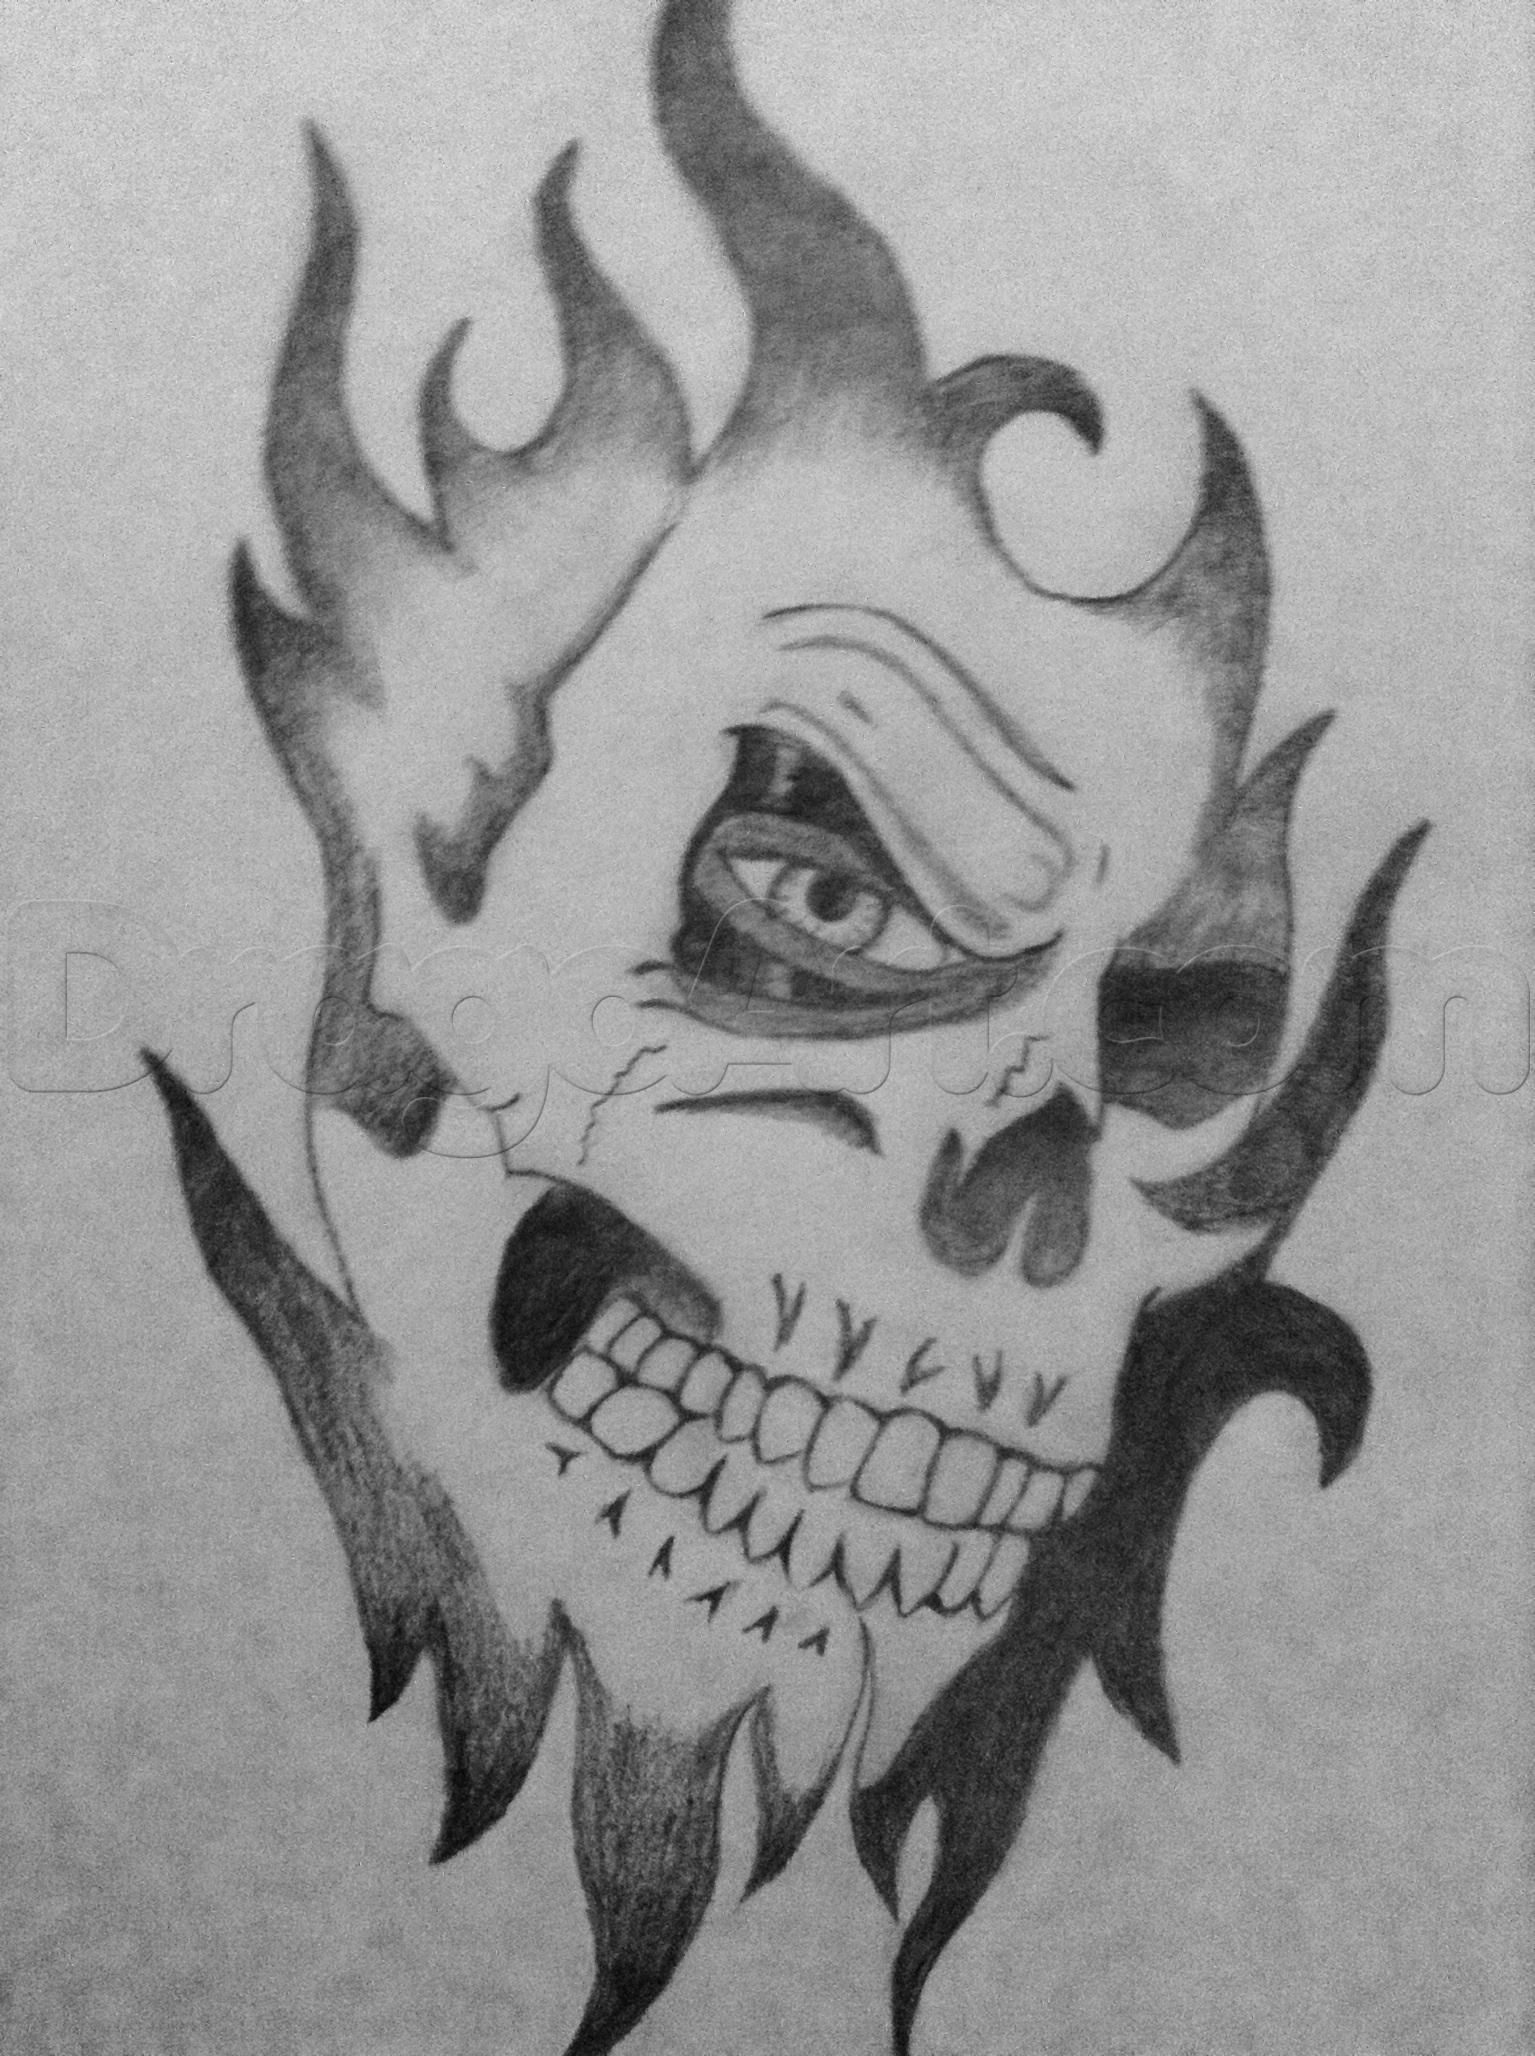 how to draw realistic skulls step by step awesome skulls and graffiti how to draw an awesome skull realistic by how step to draw skulls step